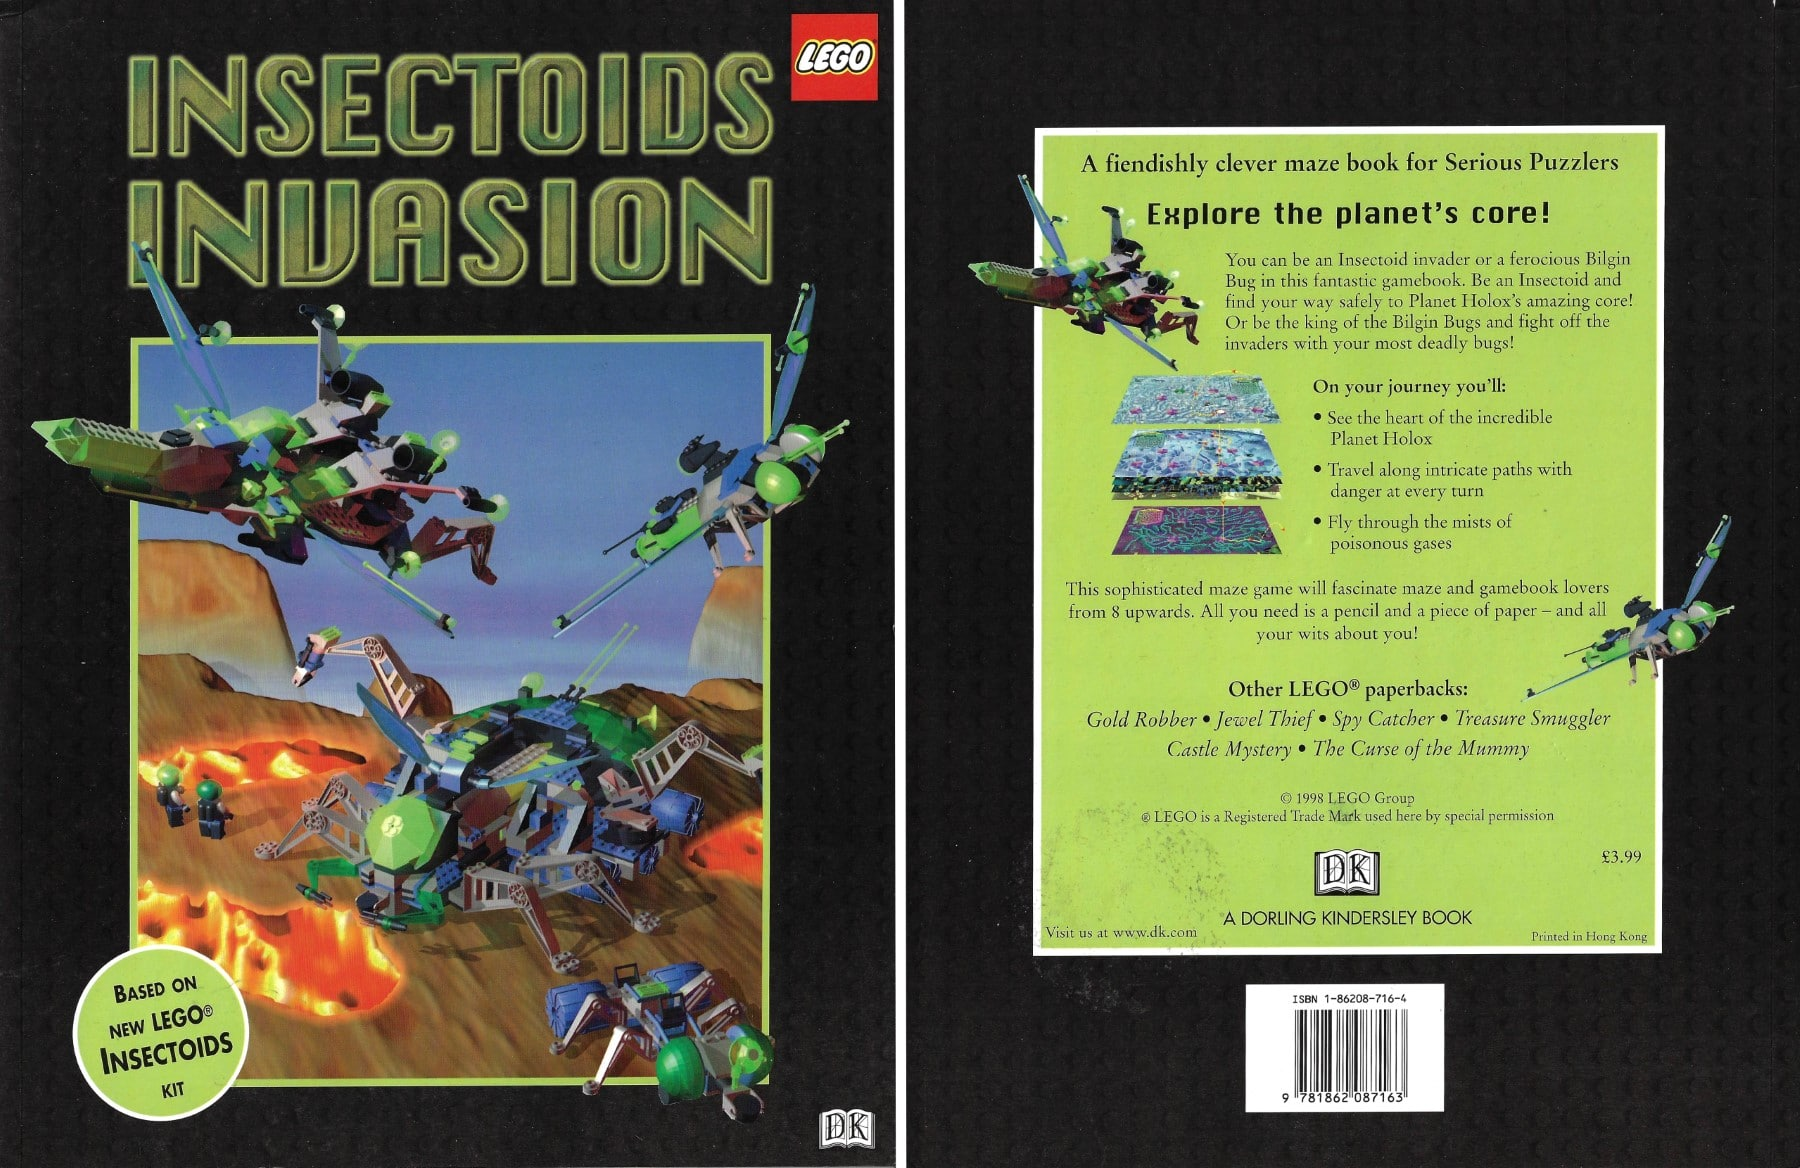 LEGO Insectoids Merchandise Buch Insectoids Invasion